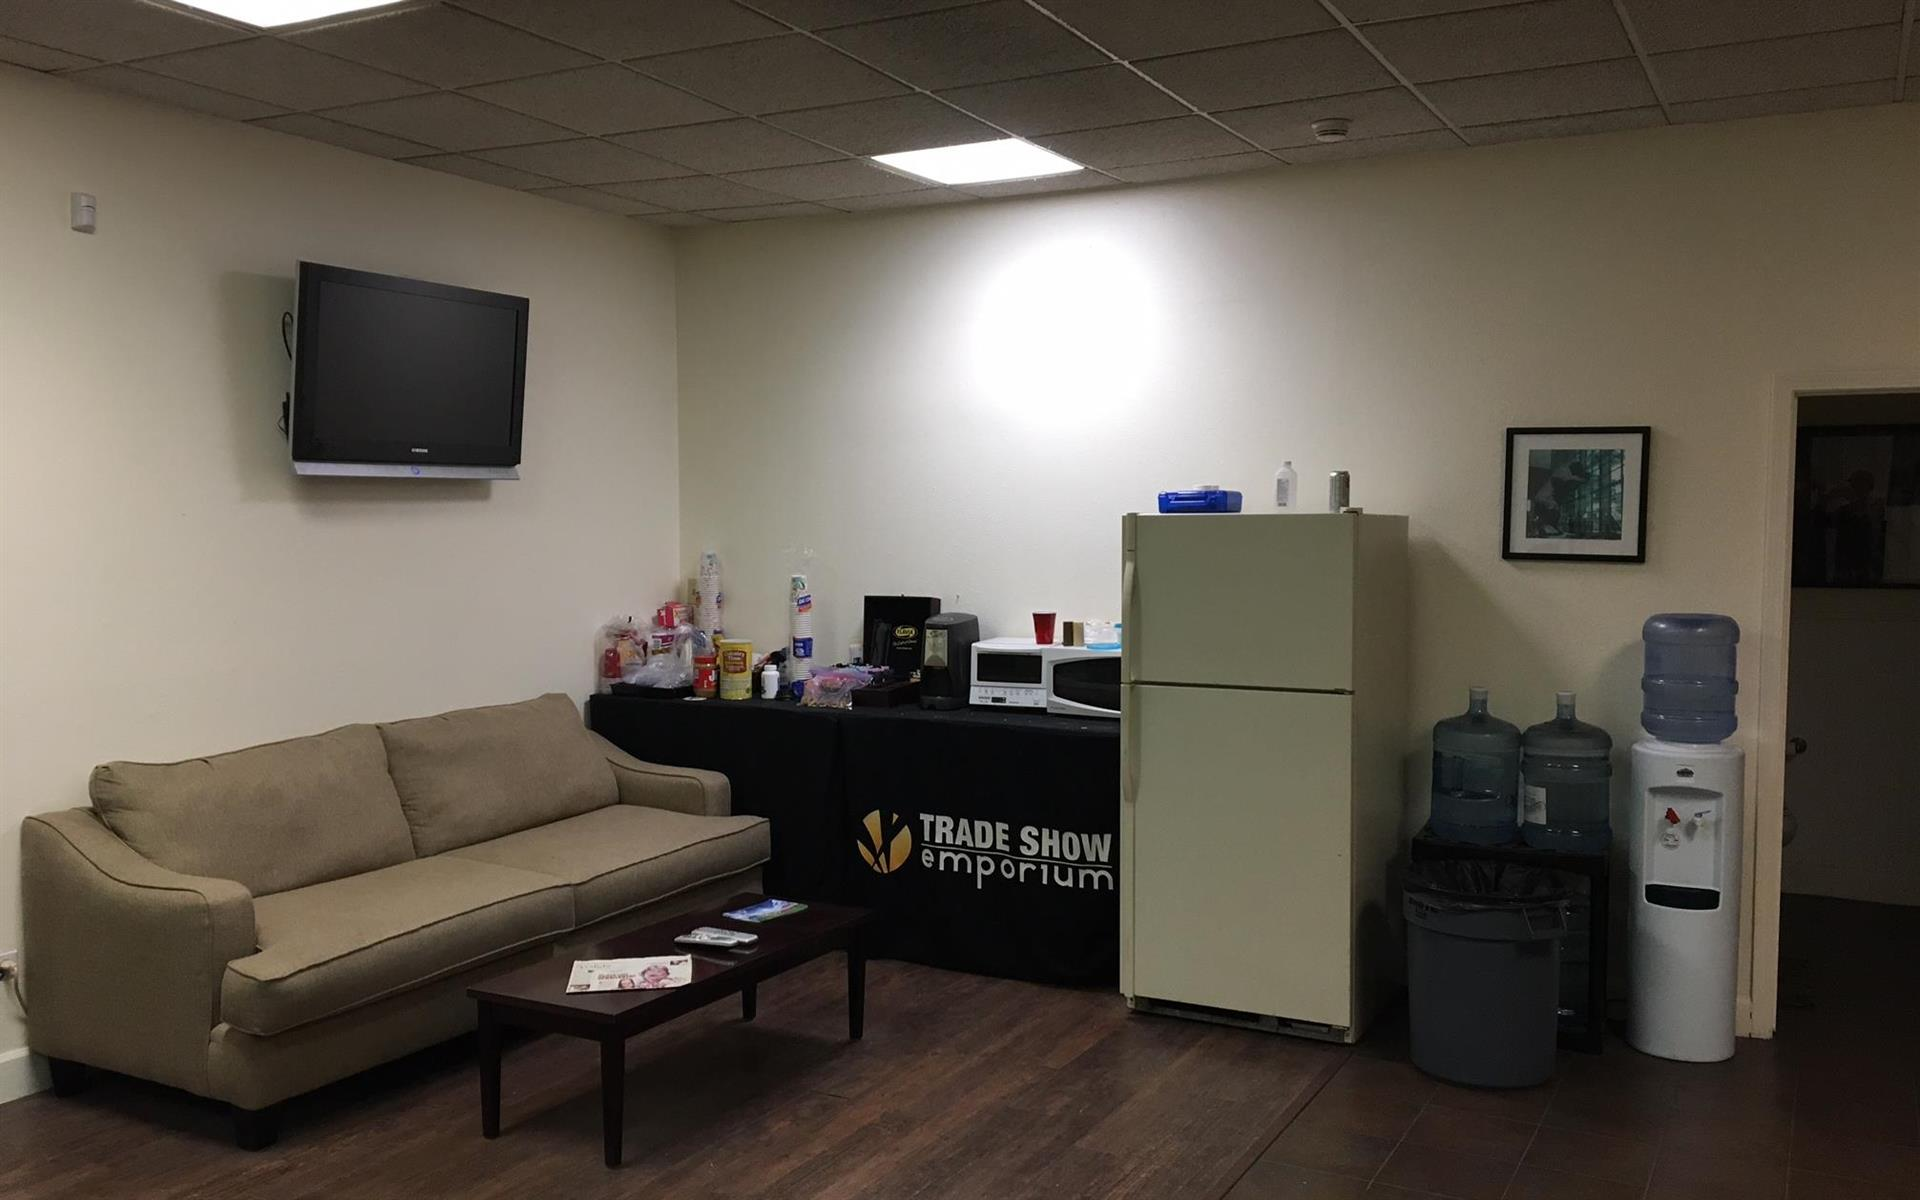 office furniture trade shows. Working At Trade Show Emporium Lakewood Office Furniture Shows